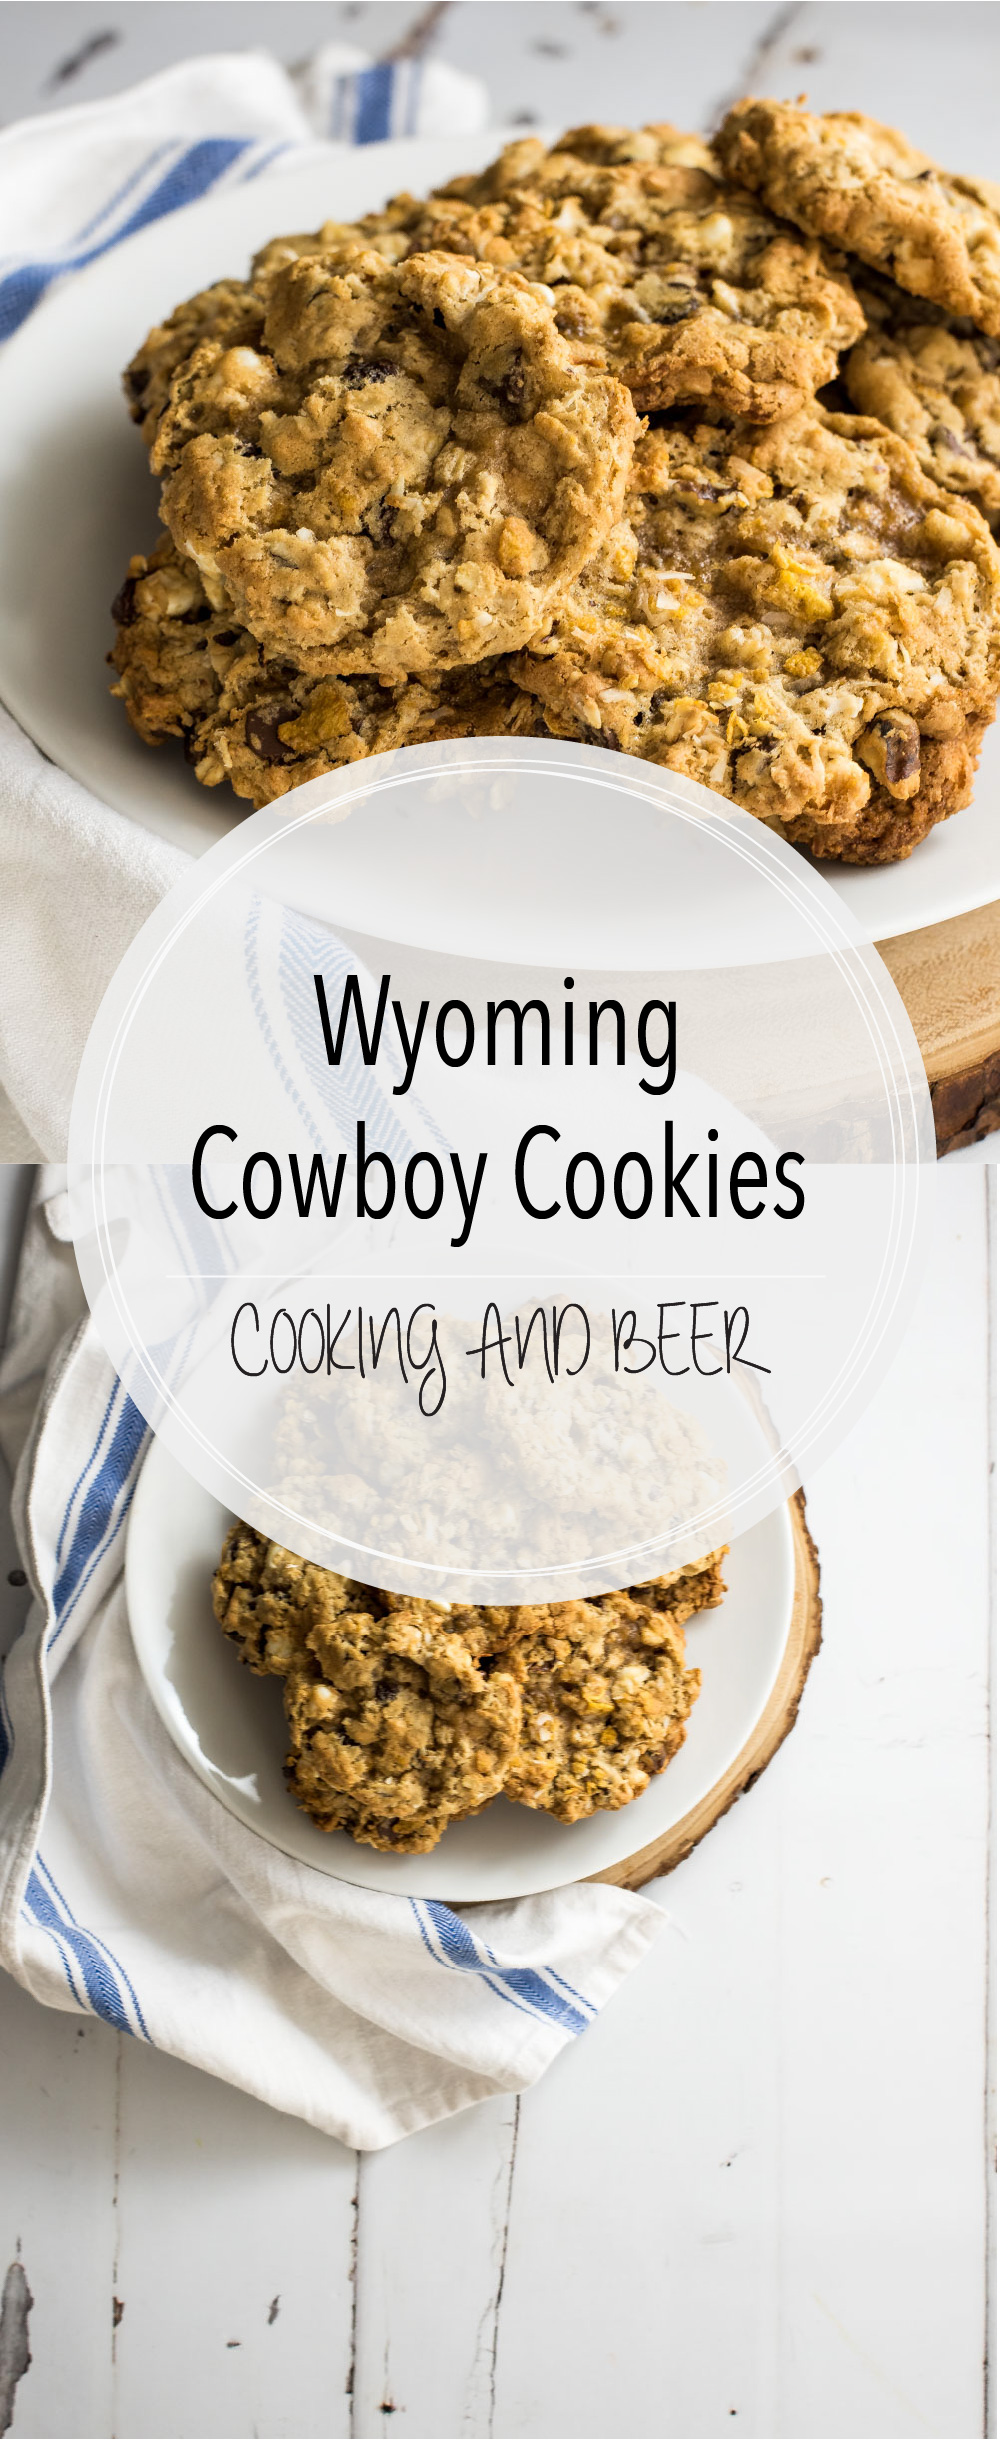 If you are looking for a loaded chocolate chip/oatmeal cookie, these Wyoming cowboy cookies are for you! You won't be able to have just one!